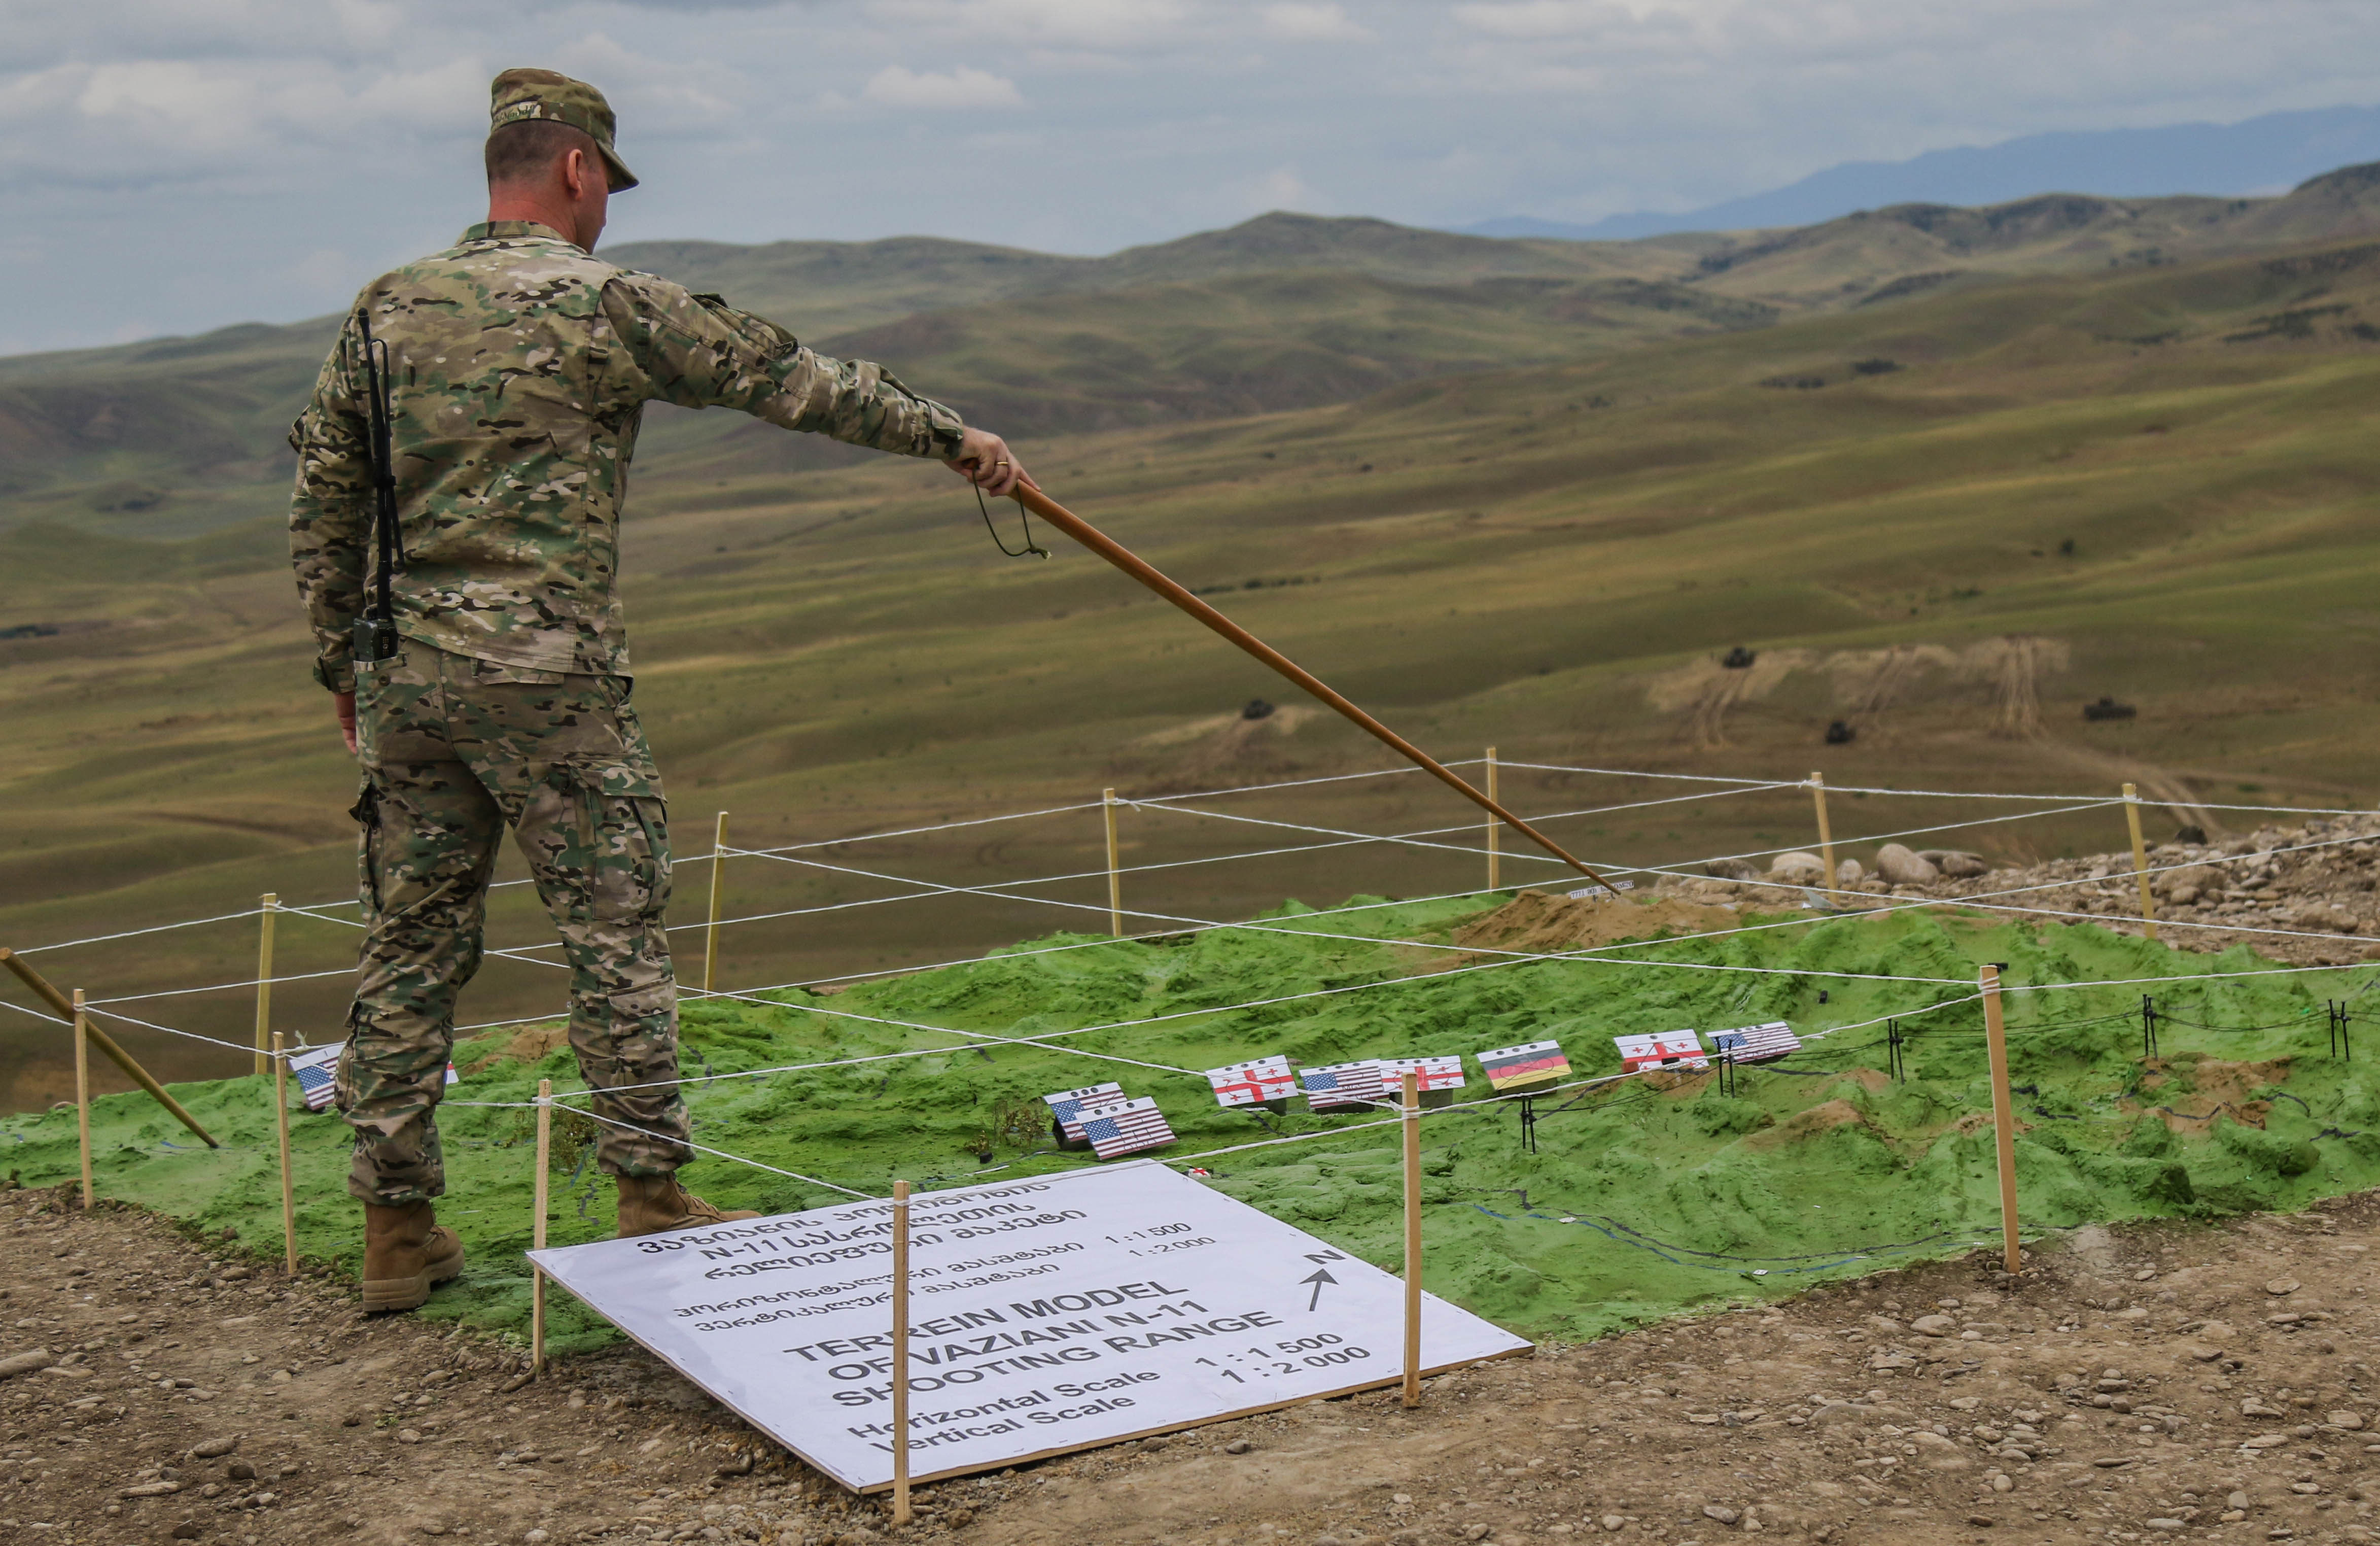 A Georgian army soldier demonstrates on a terrain model the location where mechanized fighting vehicles are shooting at Vaziani Training Area, Georgia, Aug. 15, 2018. The combined live-fire exercise was part of the culmination of Noble Partner 18, a cooperatively-led multinational training exercise in its fourth iteration which supported the training of Georgian Armed Forces' mechanized and Special Operation Forces, U.S. Regionally Aligned Forces, the U.S. Army and Air National Guard from the state of Georgia, and 11 other participating nations.